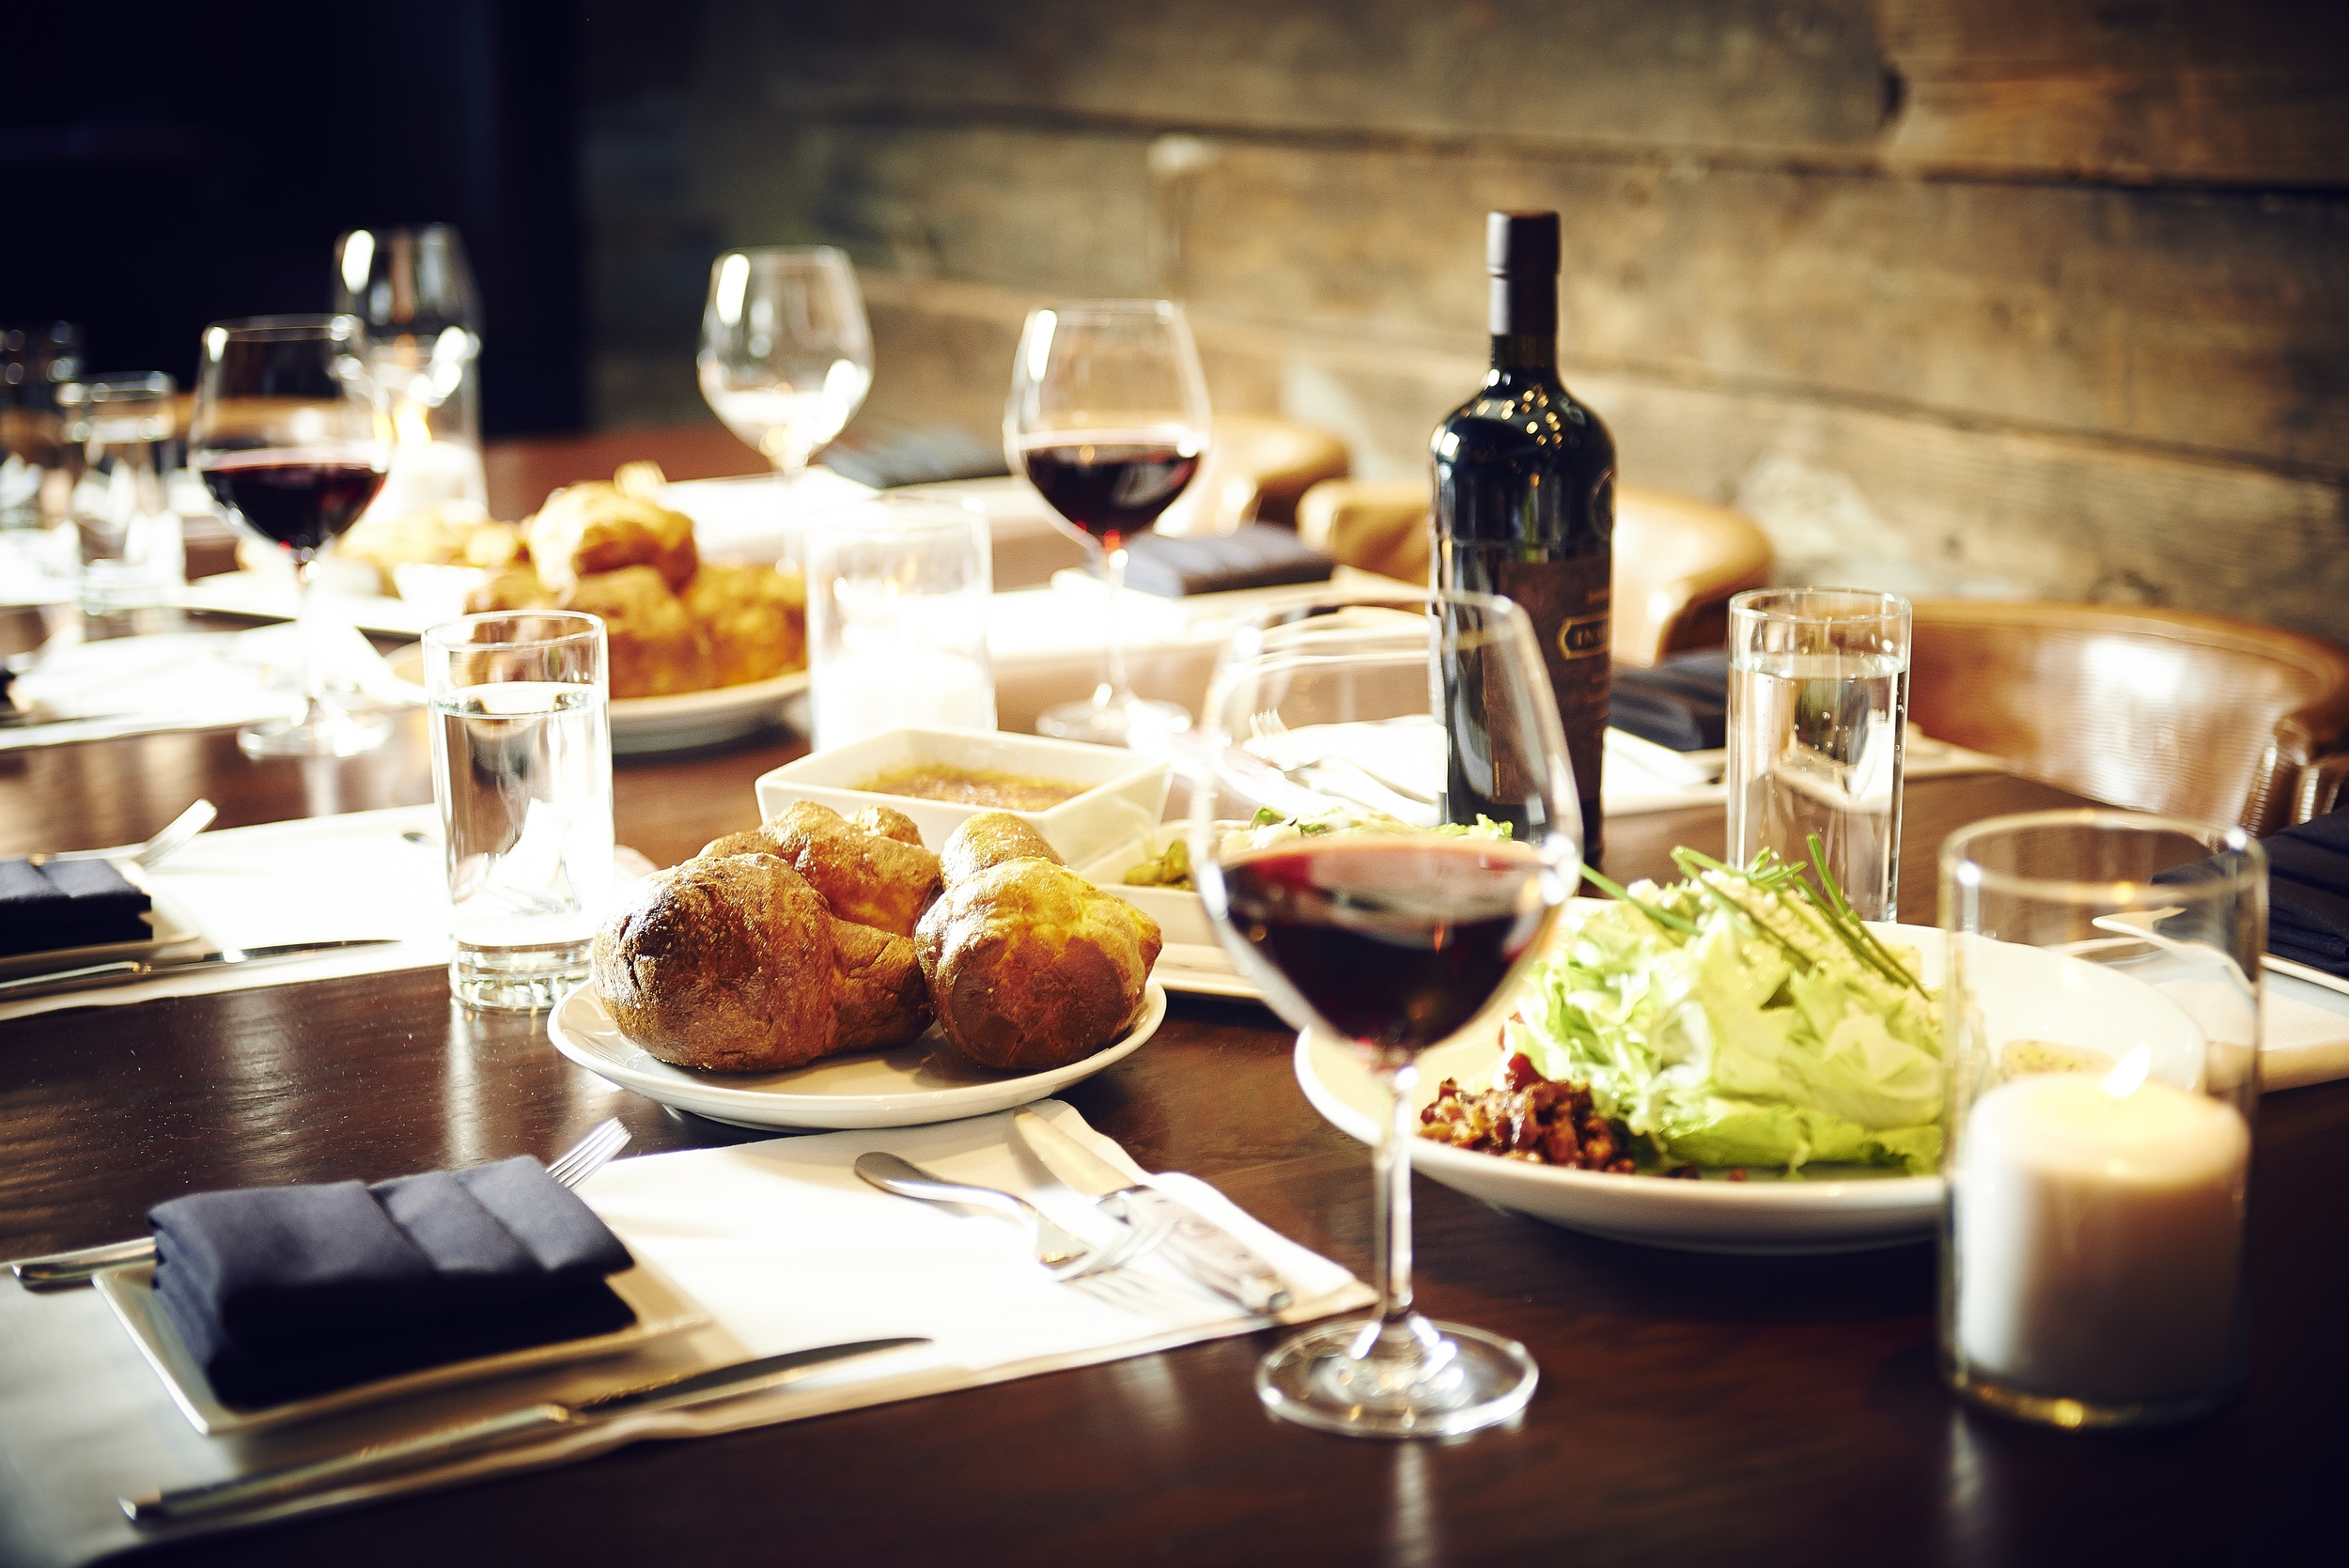 Private, 4-hour guided tour of Nashville's premier dining destination    4-course progressive dinner to include Italian, Asian Fusion, Mexican, and American Steakhouse cuisine    Each course to be enjoyed at four individually acclaimed restaurants